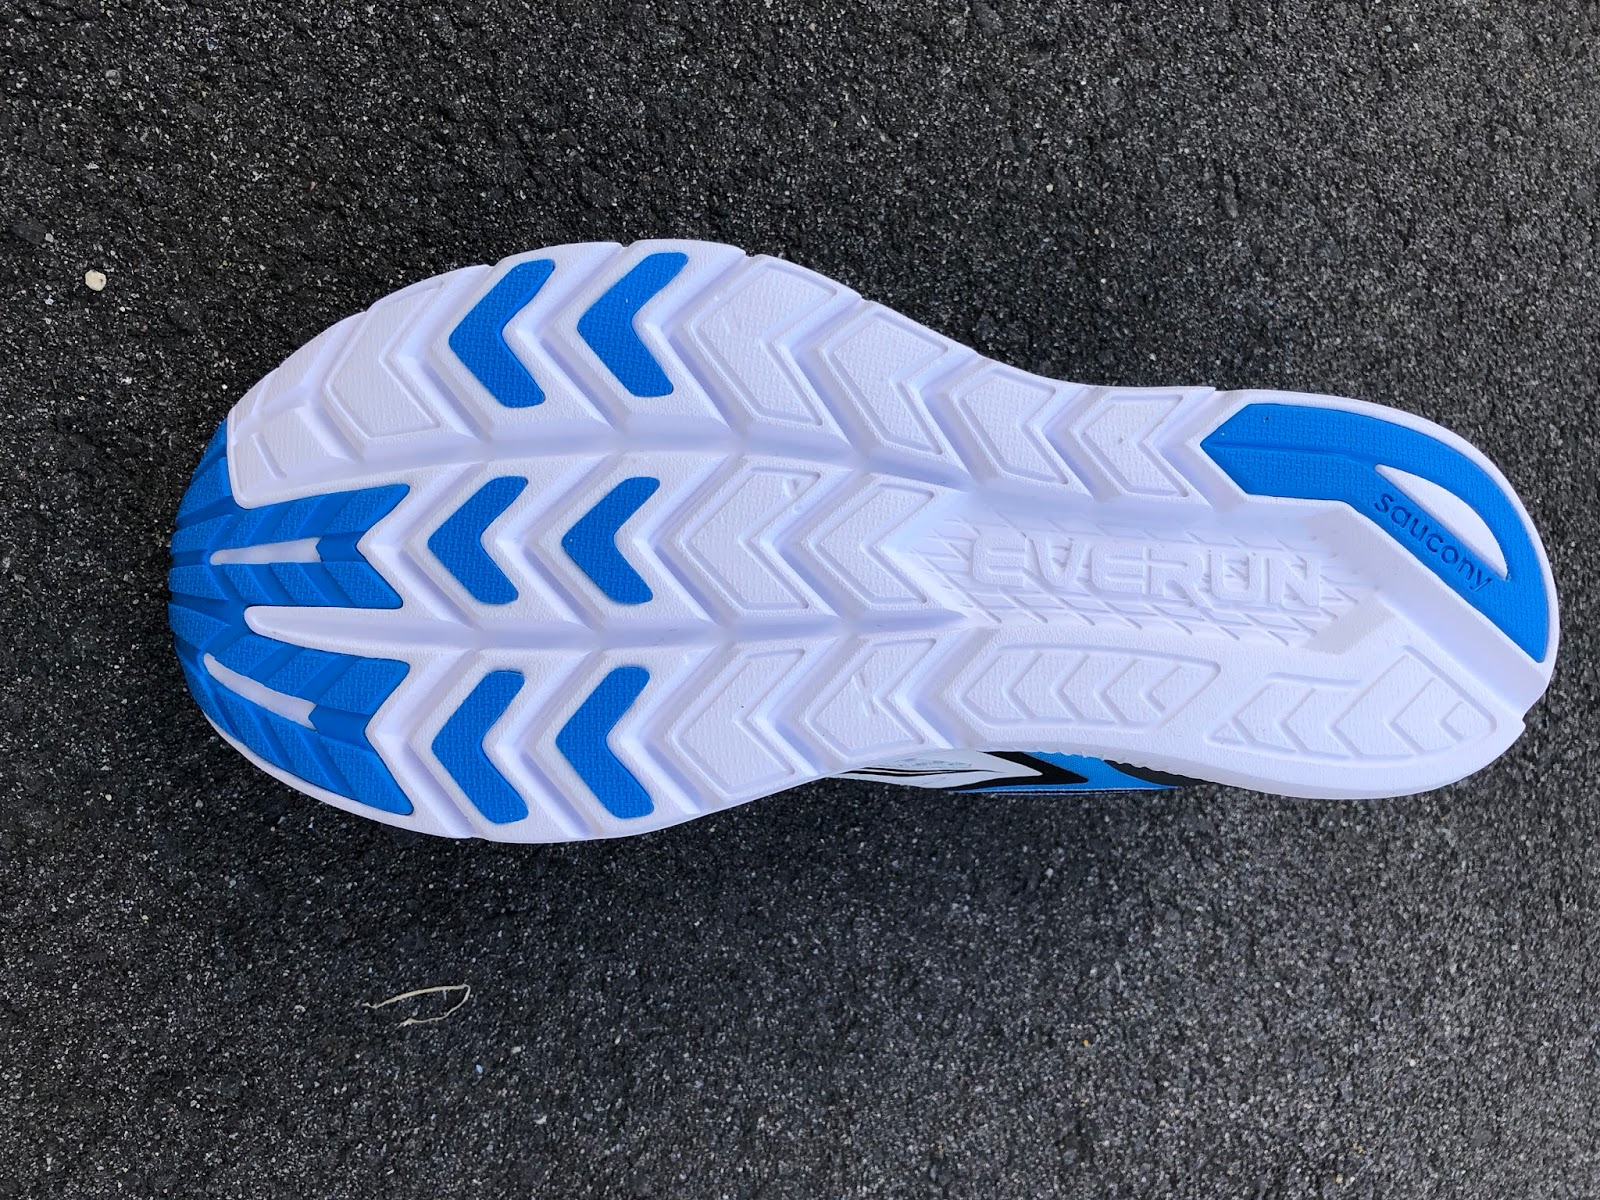 on sale 8ea04 256ae The new longitudinal flex grooves make a huge positive difference in how  the shoe runs giving it a very fluid any pace ...